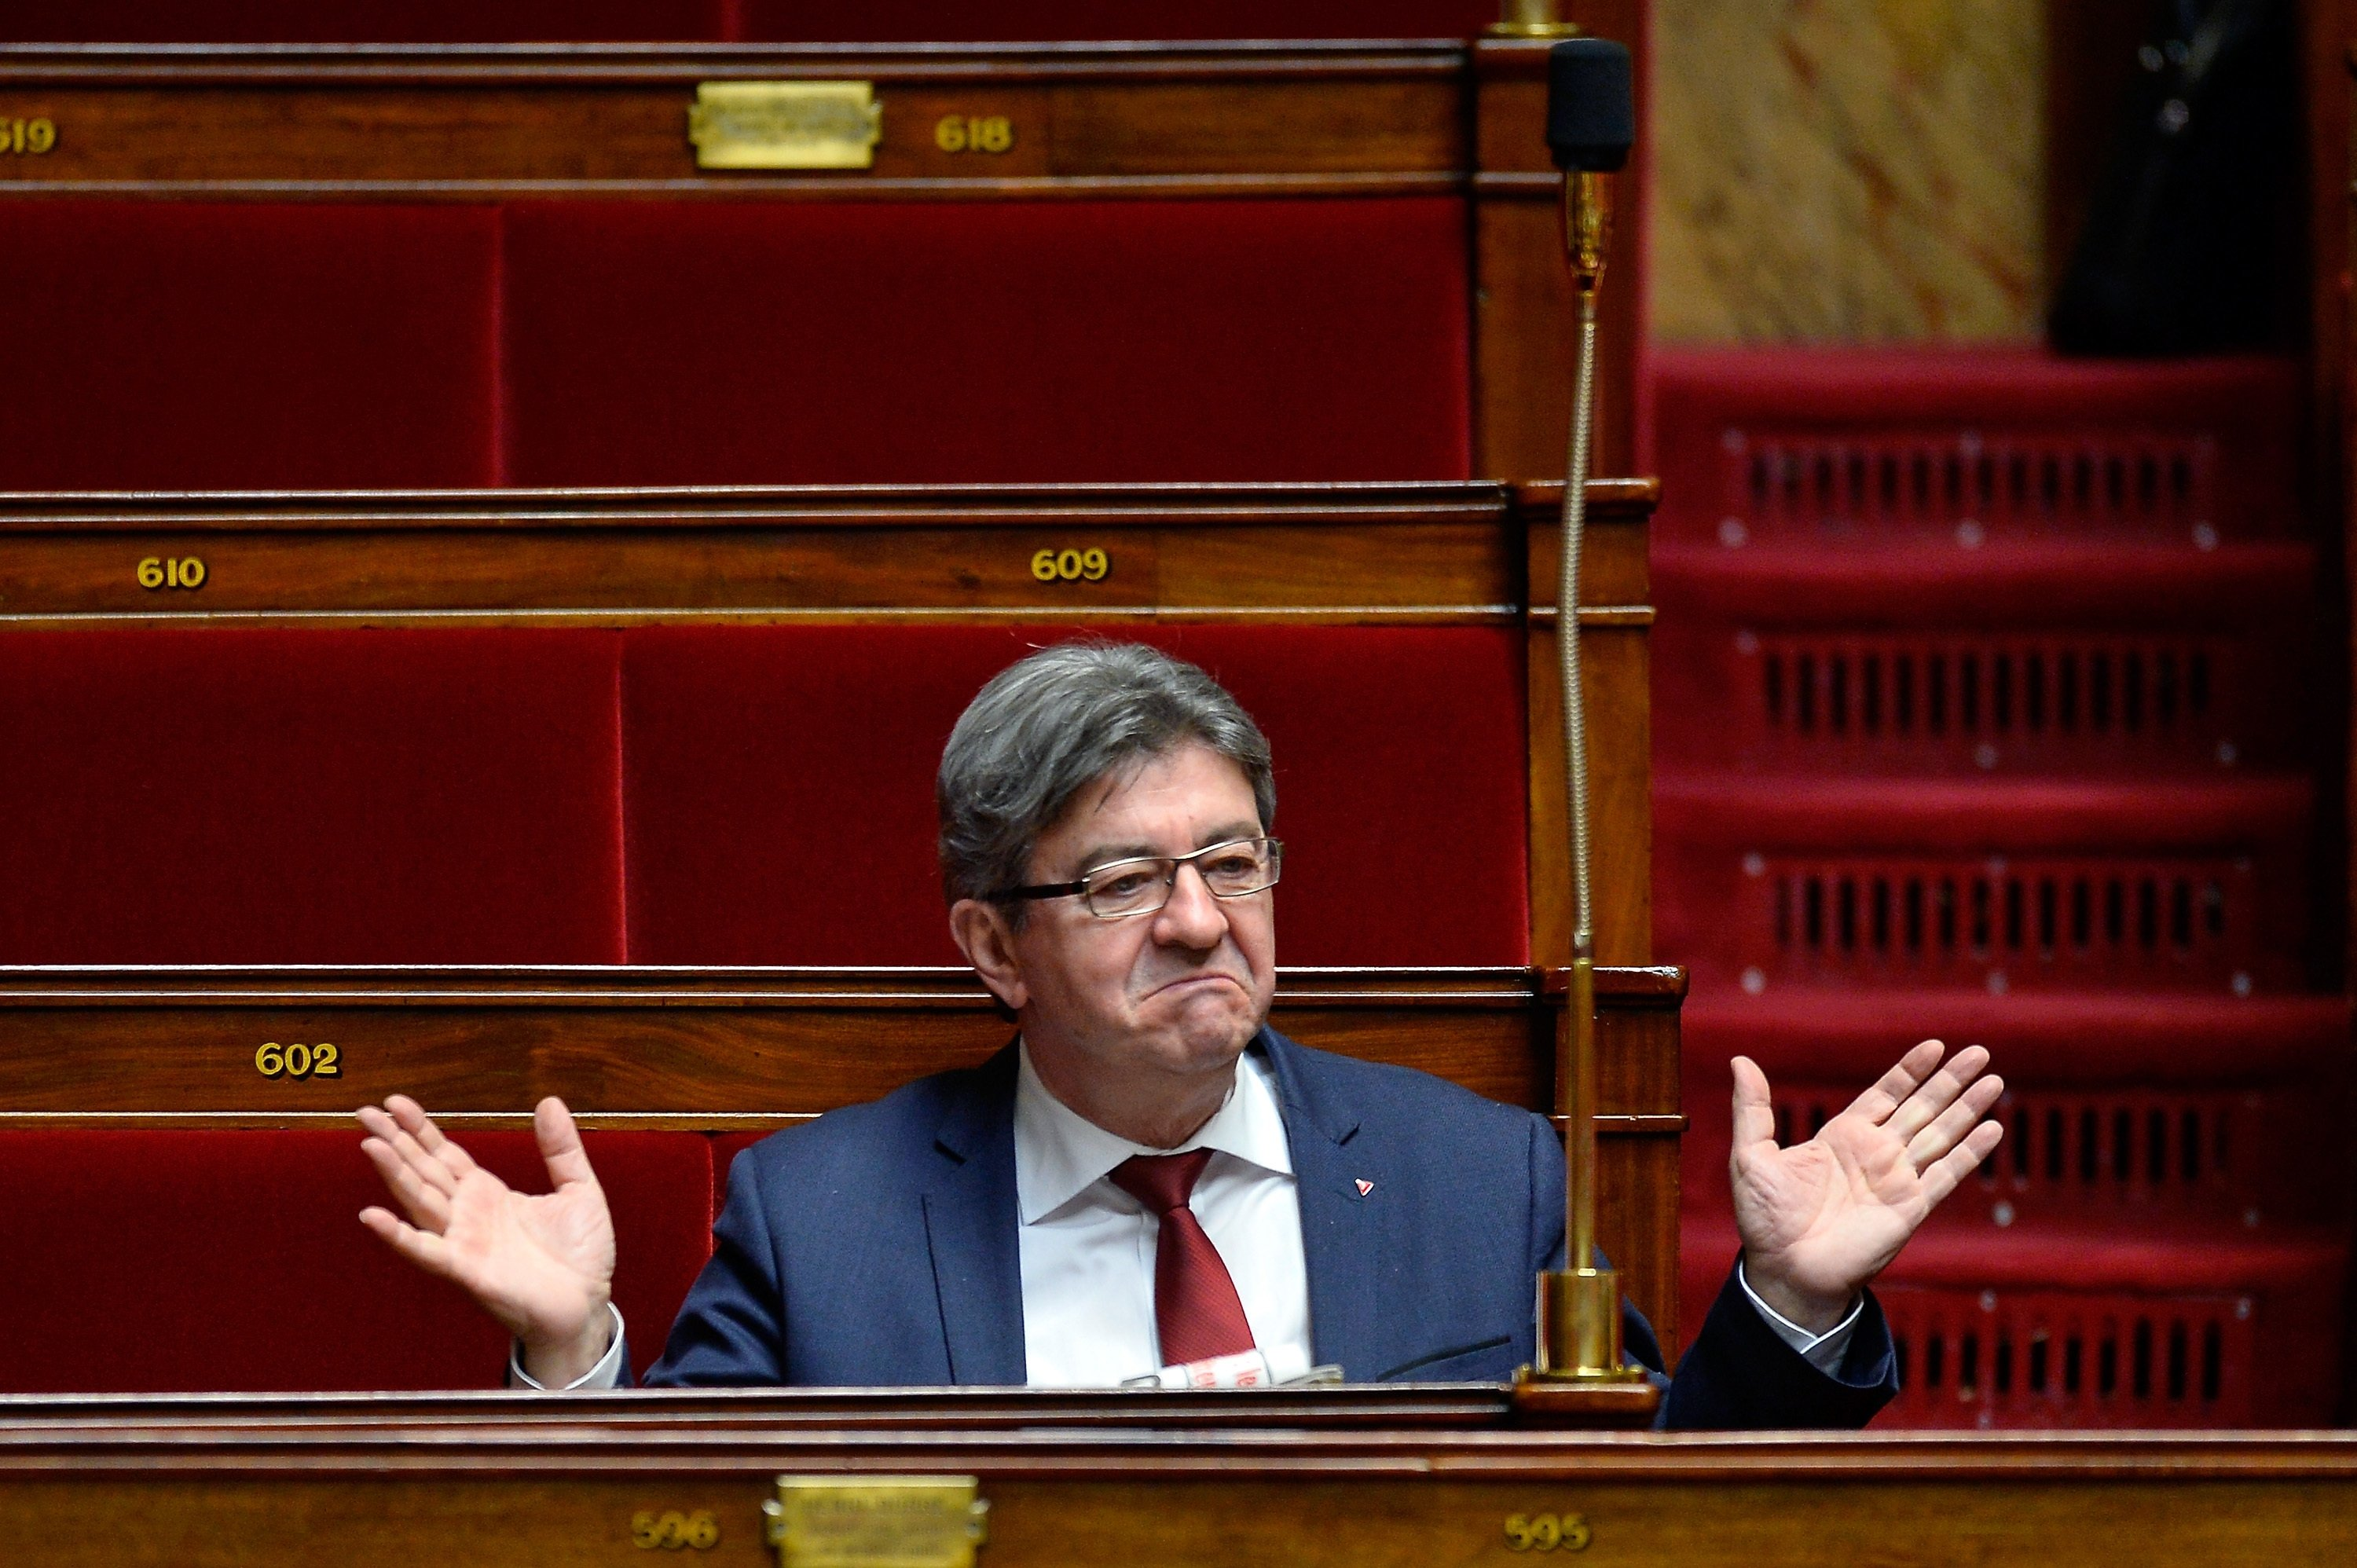 Leader of 'La France Insoumise' Jean Luc Melenchon reacts as ministers answer deputies' questions during the weekly session of questions to the government at Assemblee Nationale in Paris, France, Jan. 31, 2018. (Getty Images Photo)